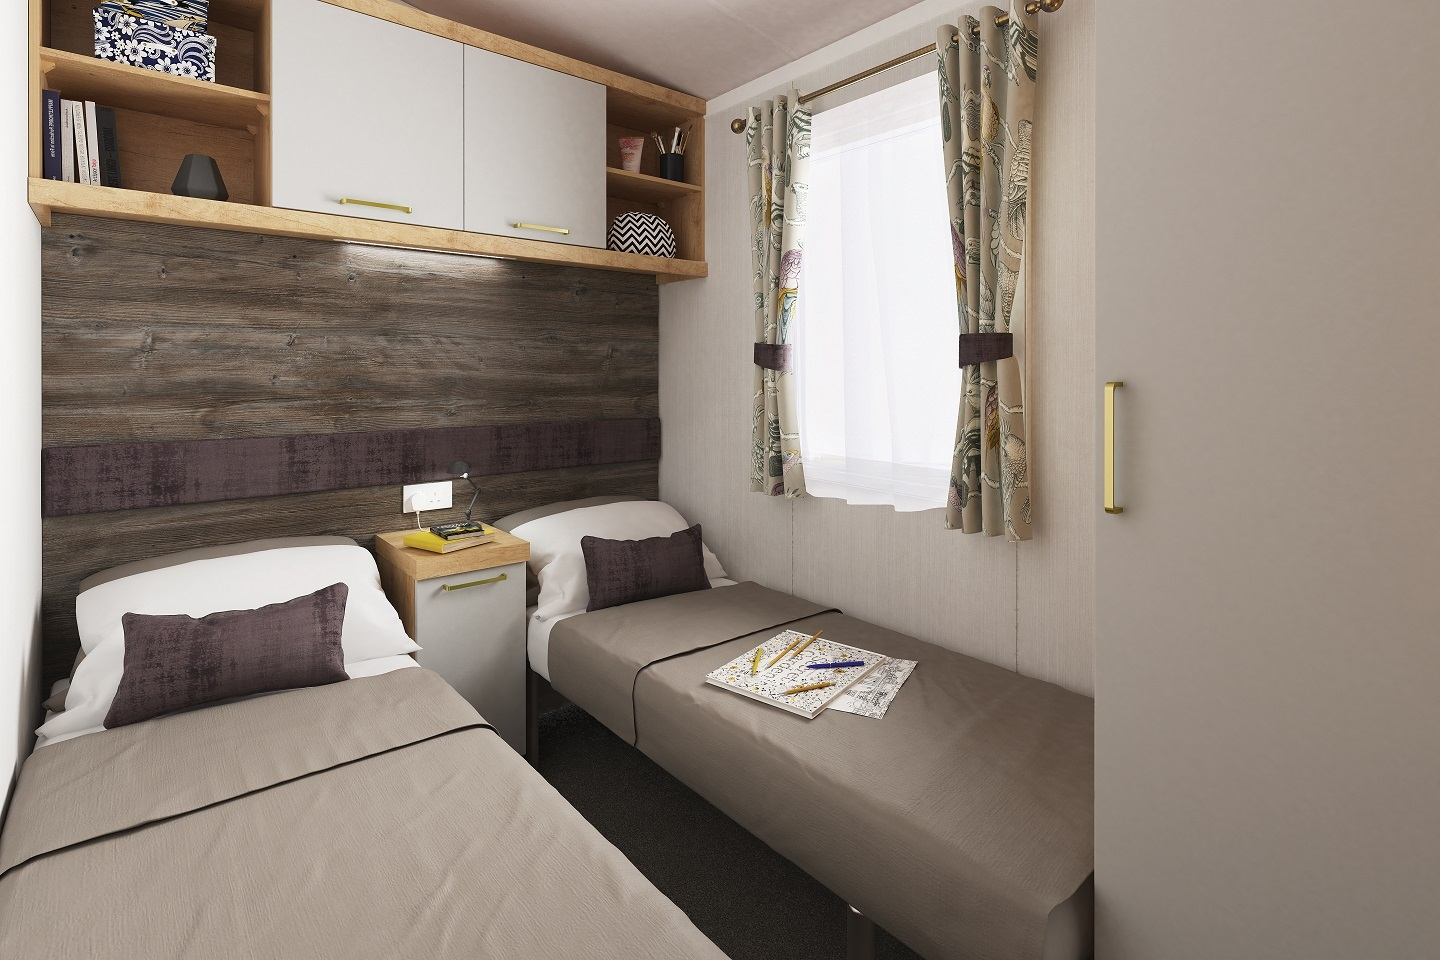 Swift Bordeaux: New Static Caravans and Holiday Homes for Sale, Langley Moor, Durham Image 2